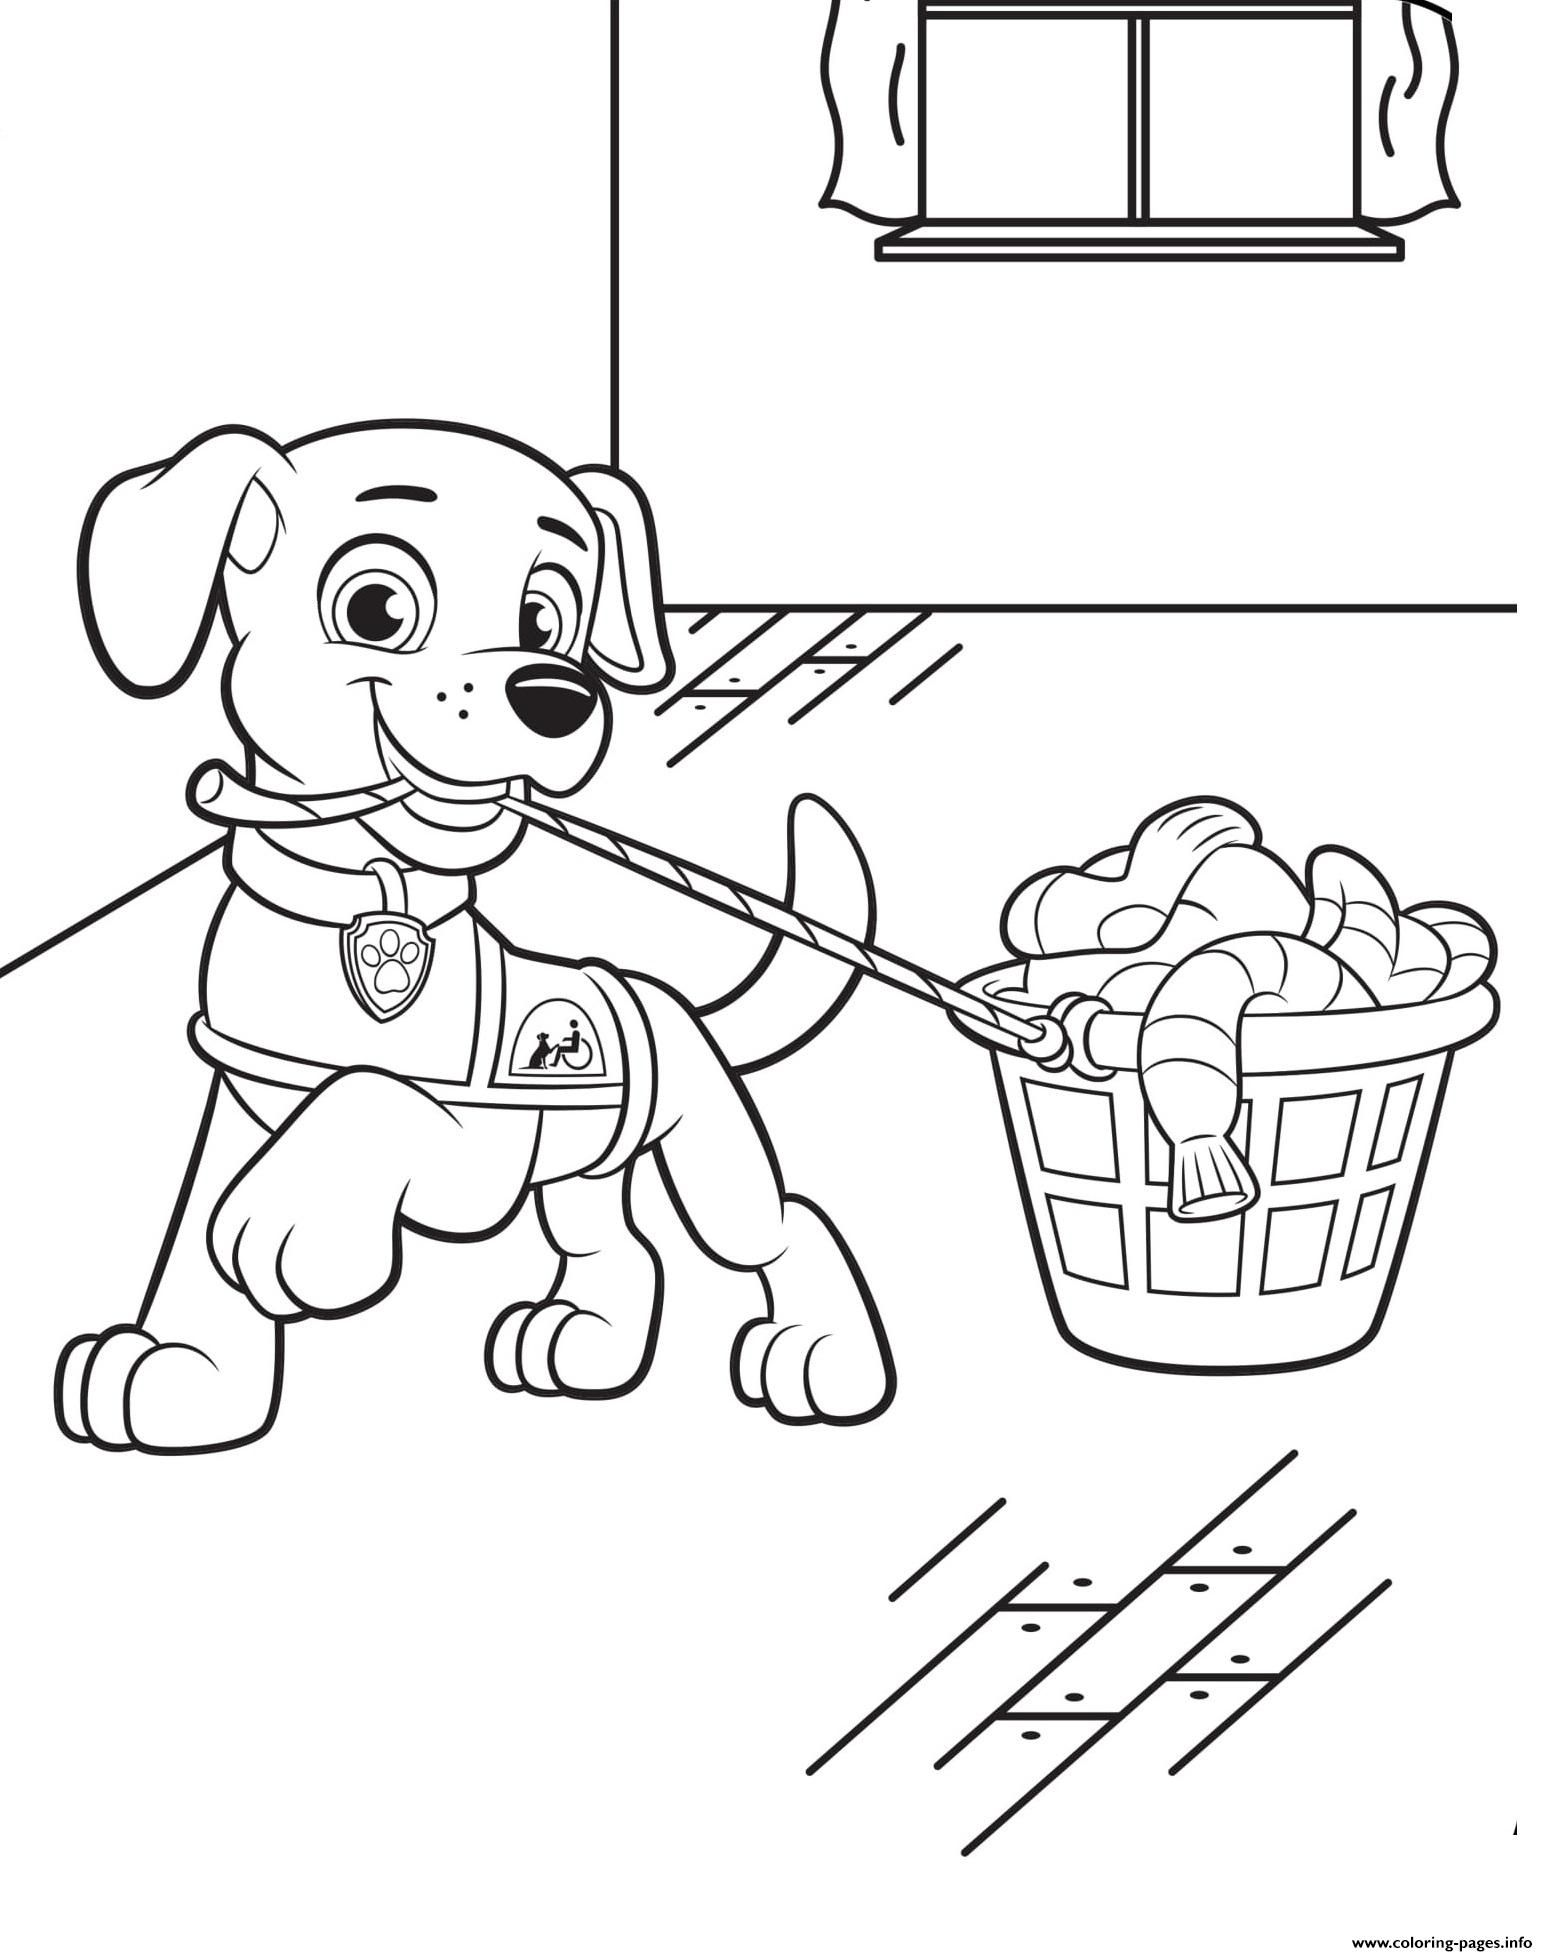 Print Canine Companions For Independence Helping Coloring Pages